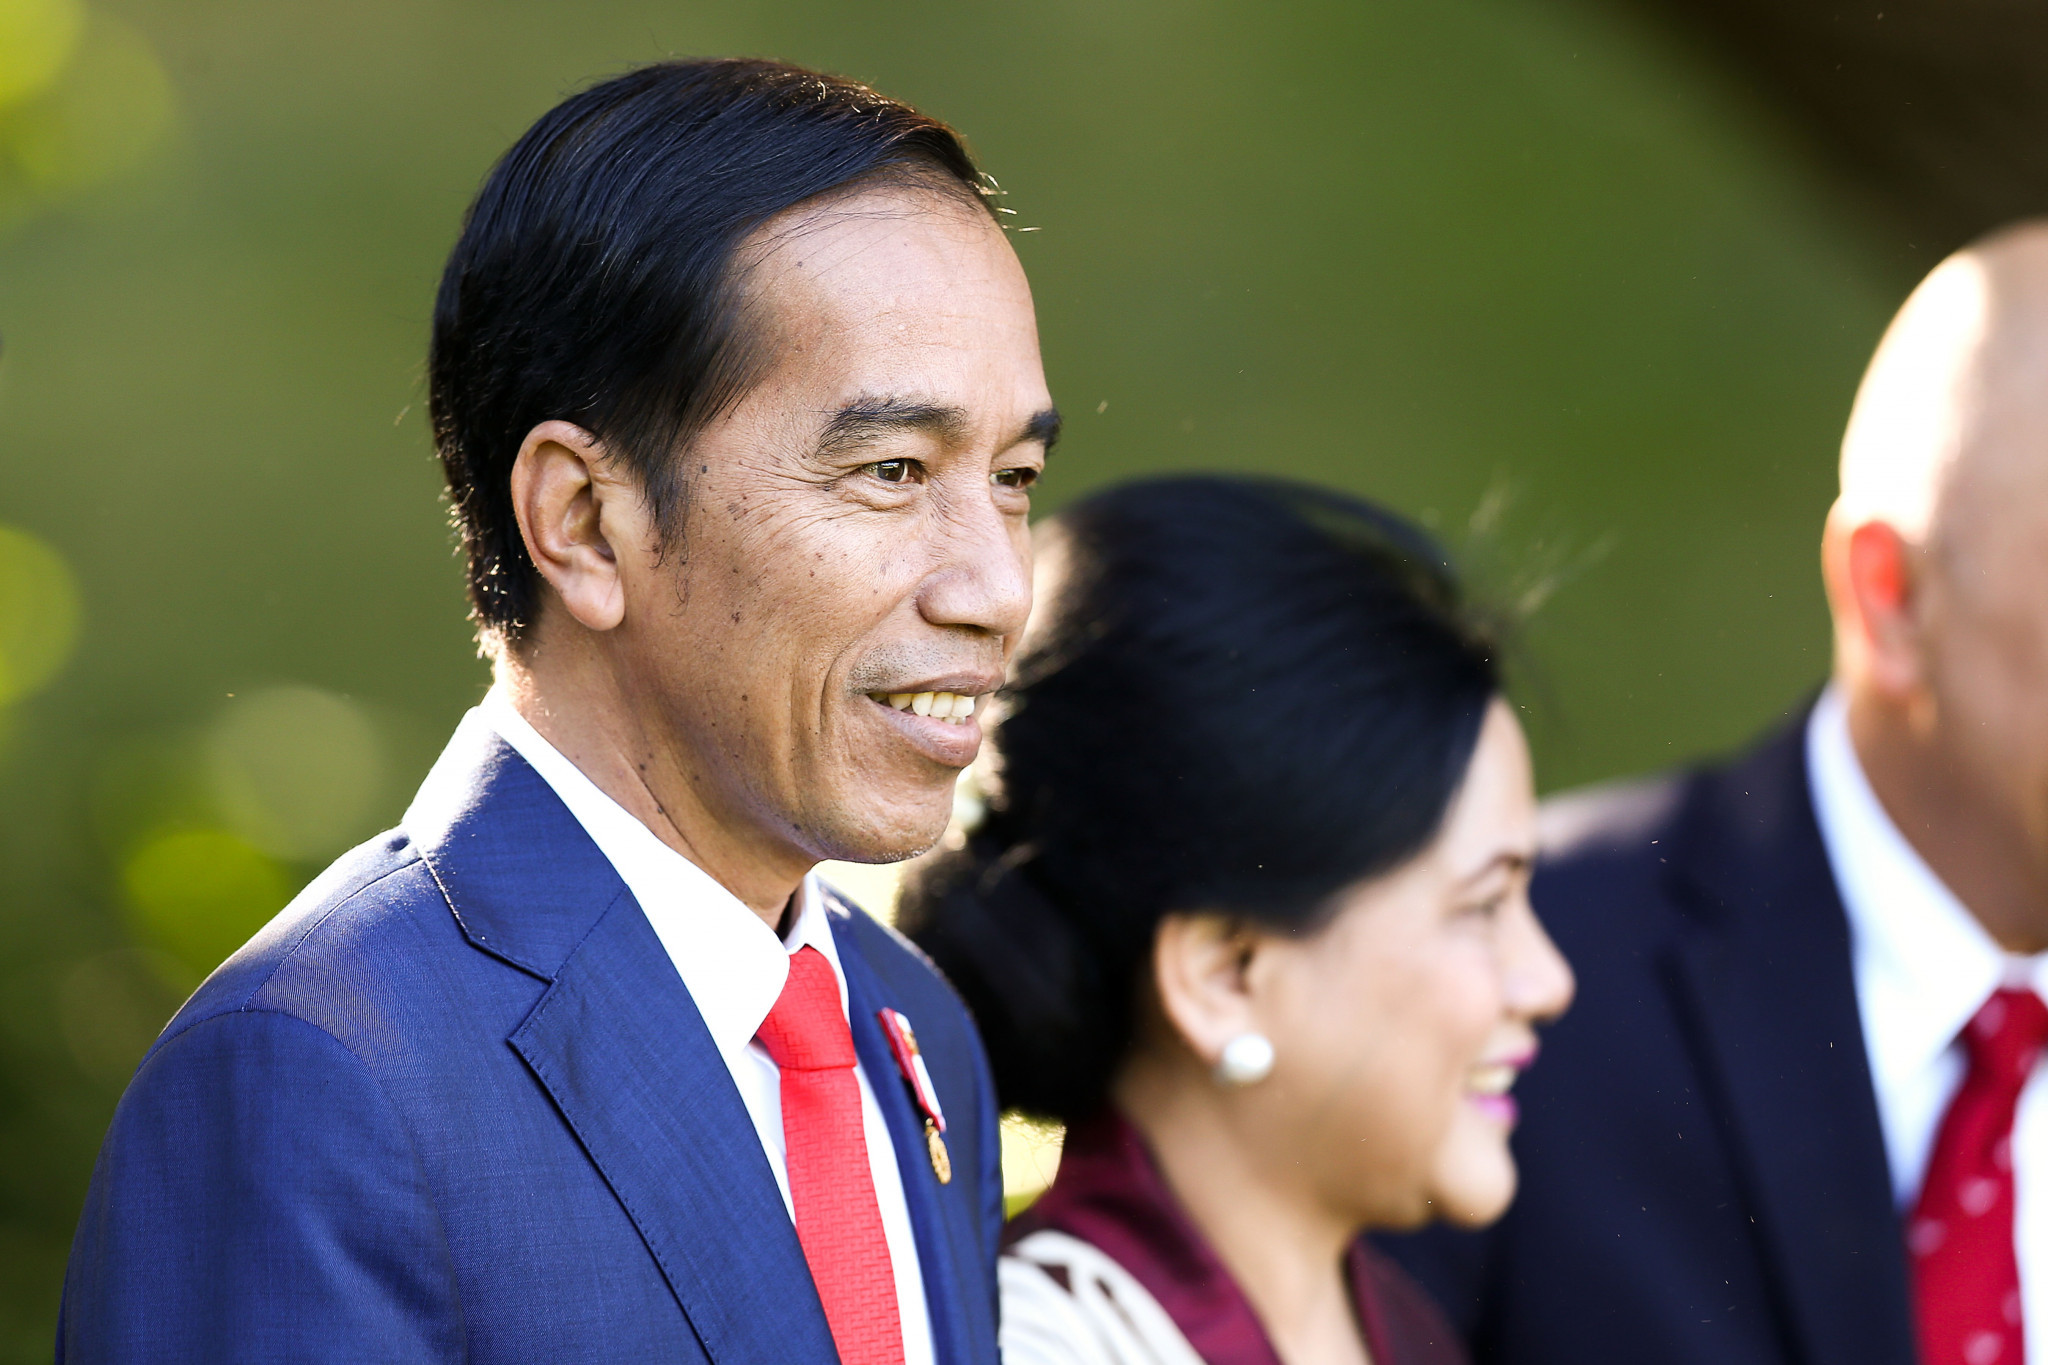 Indonesian President visits Jakabaring Sport City to check-up on preparations for 2018 Asian Games